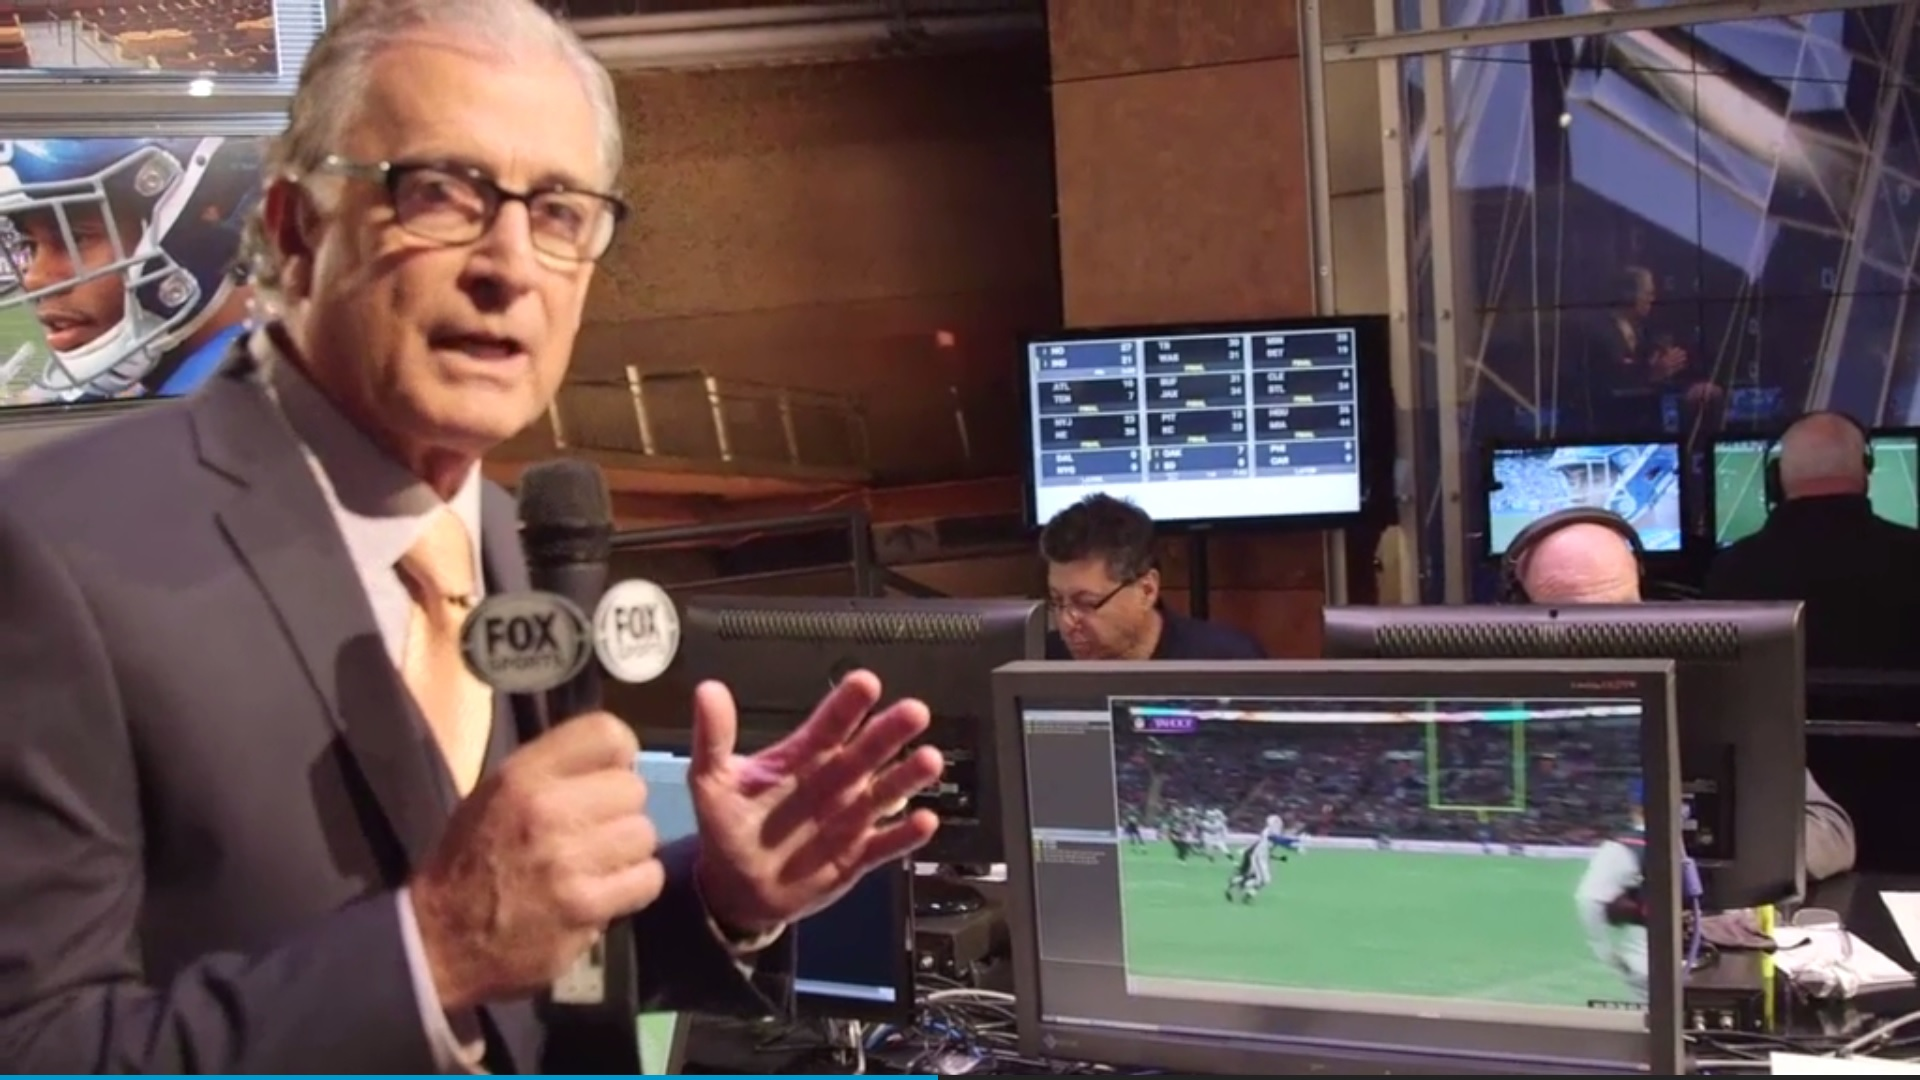 Mike Pereira of Fox Sports explained why he disagreed with the pass interference call on Nickell Robey.